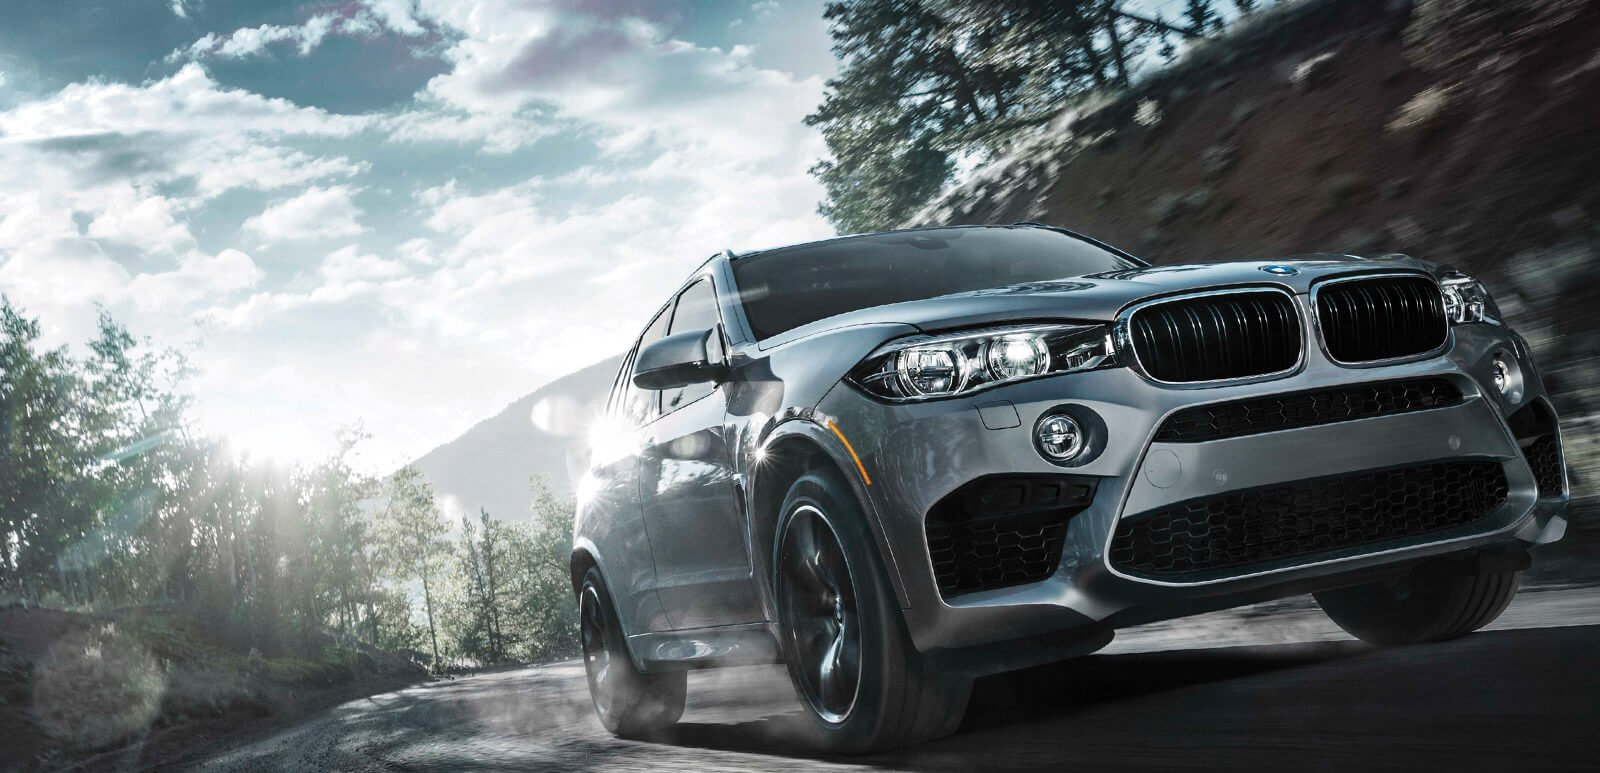 BMW Owings Mills >> New Bmw X5 M Leases Prices Owings Mills Md